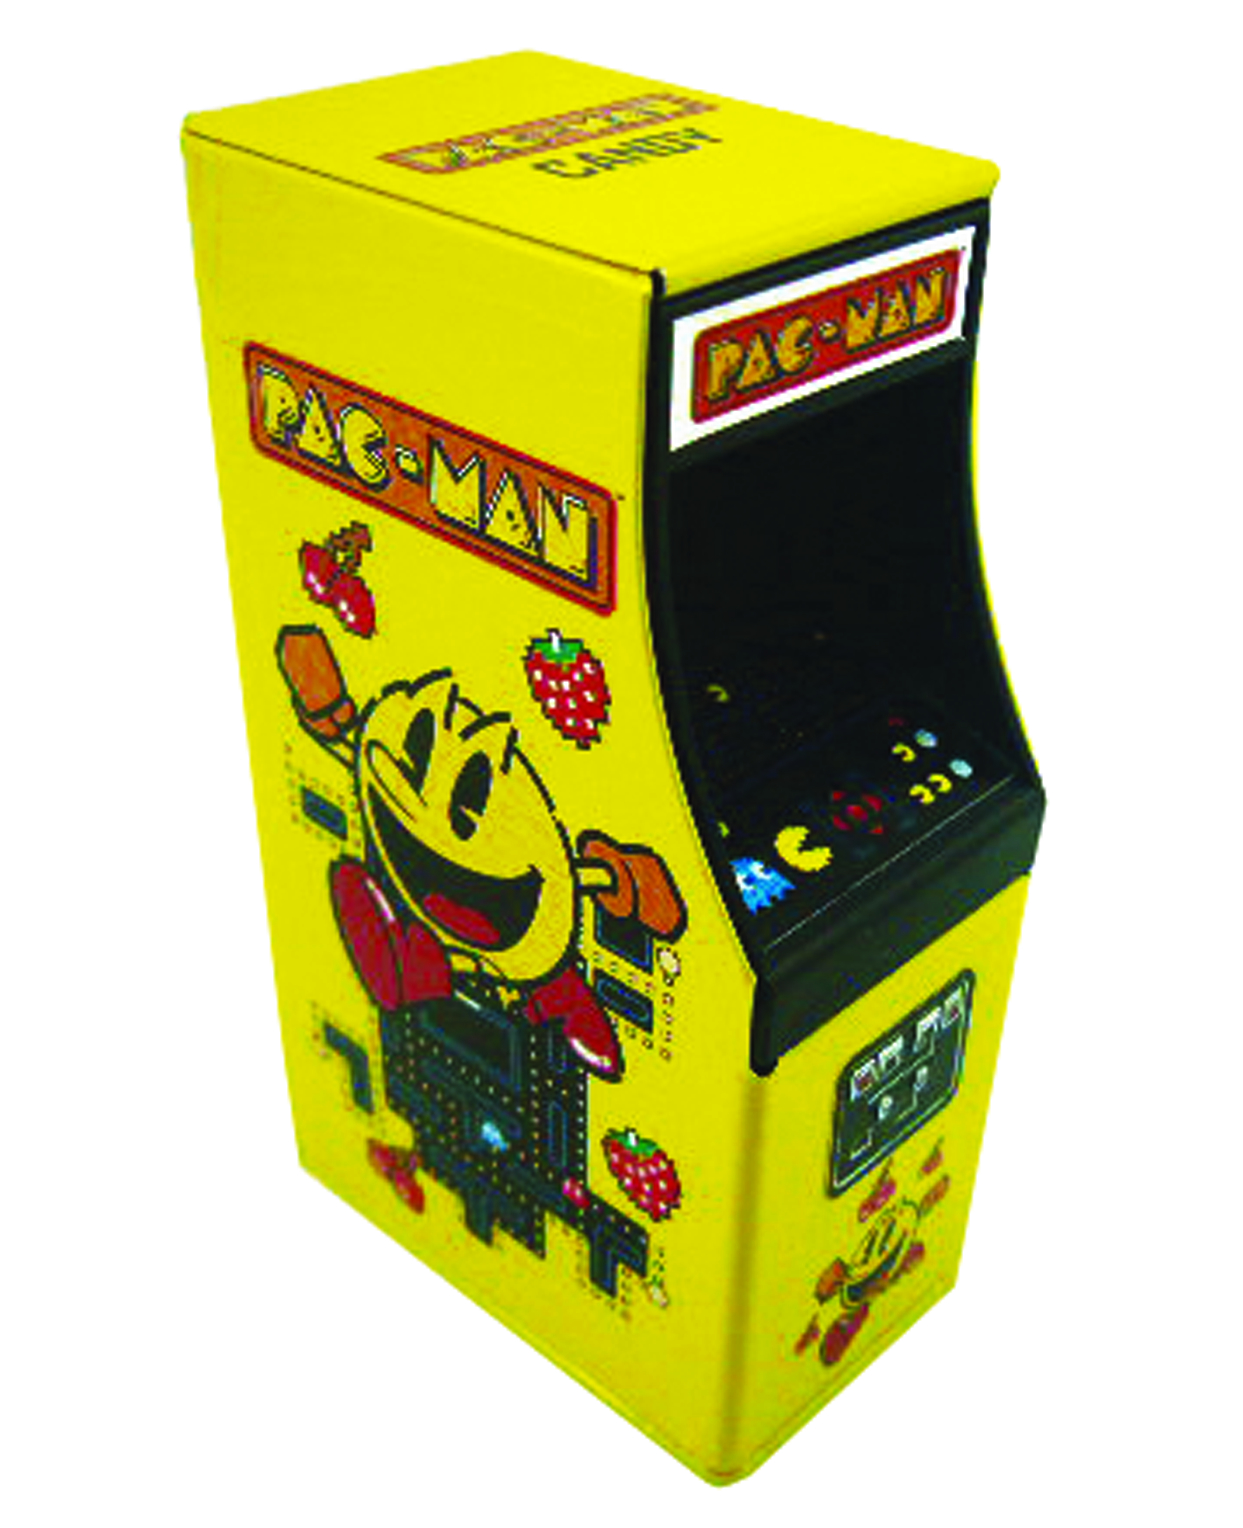 PAC-MAN CABINET CANDY TIN 12CT DISP